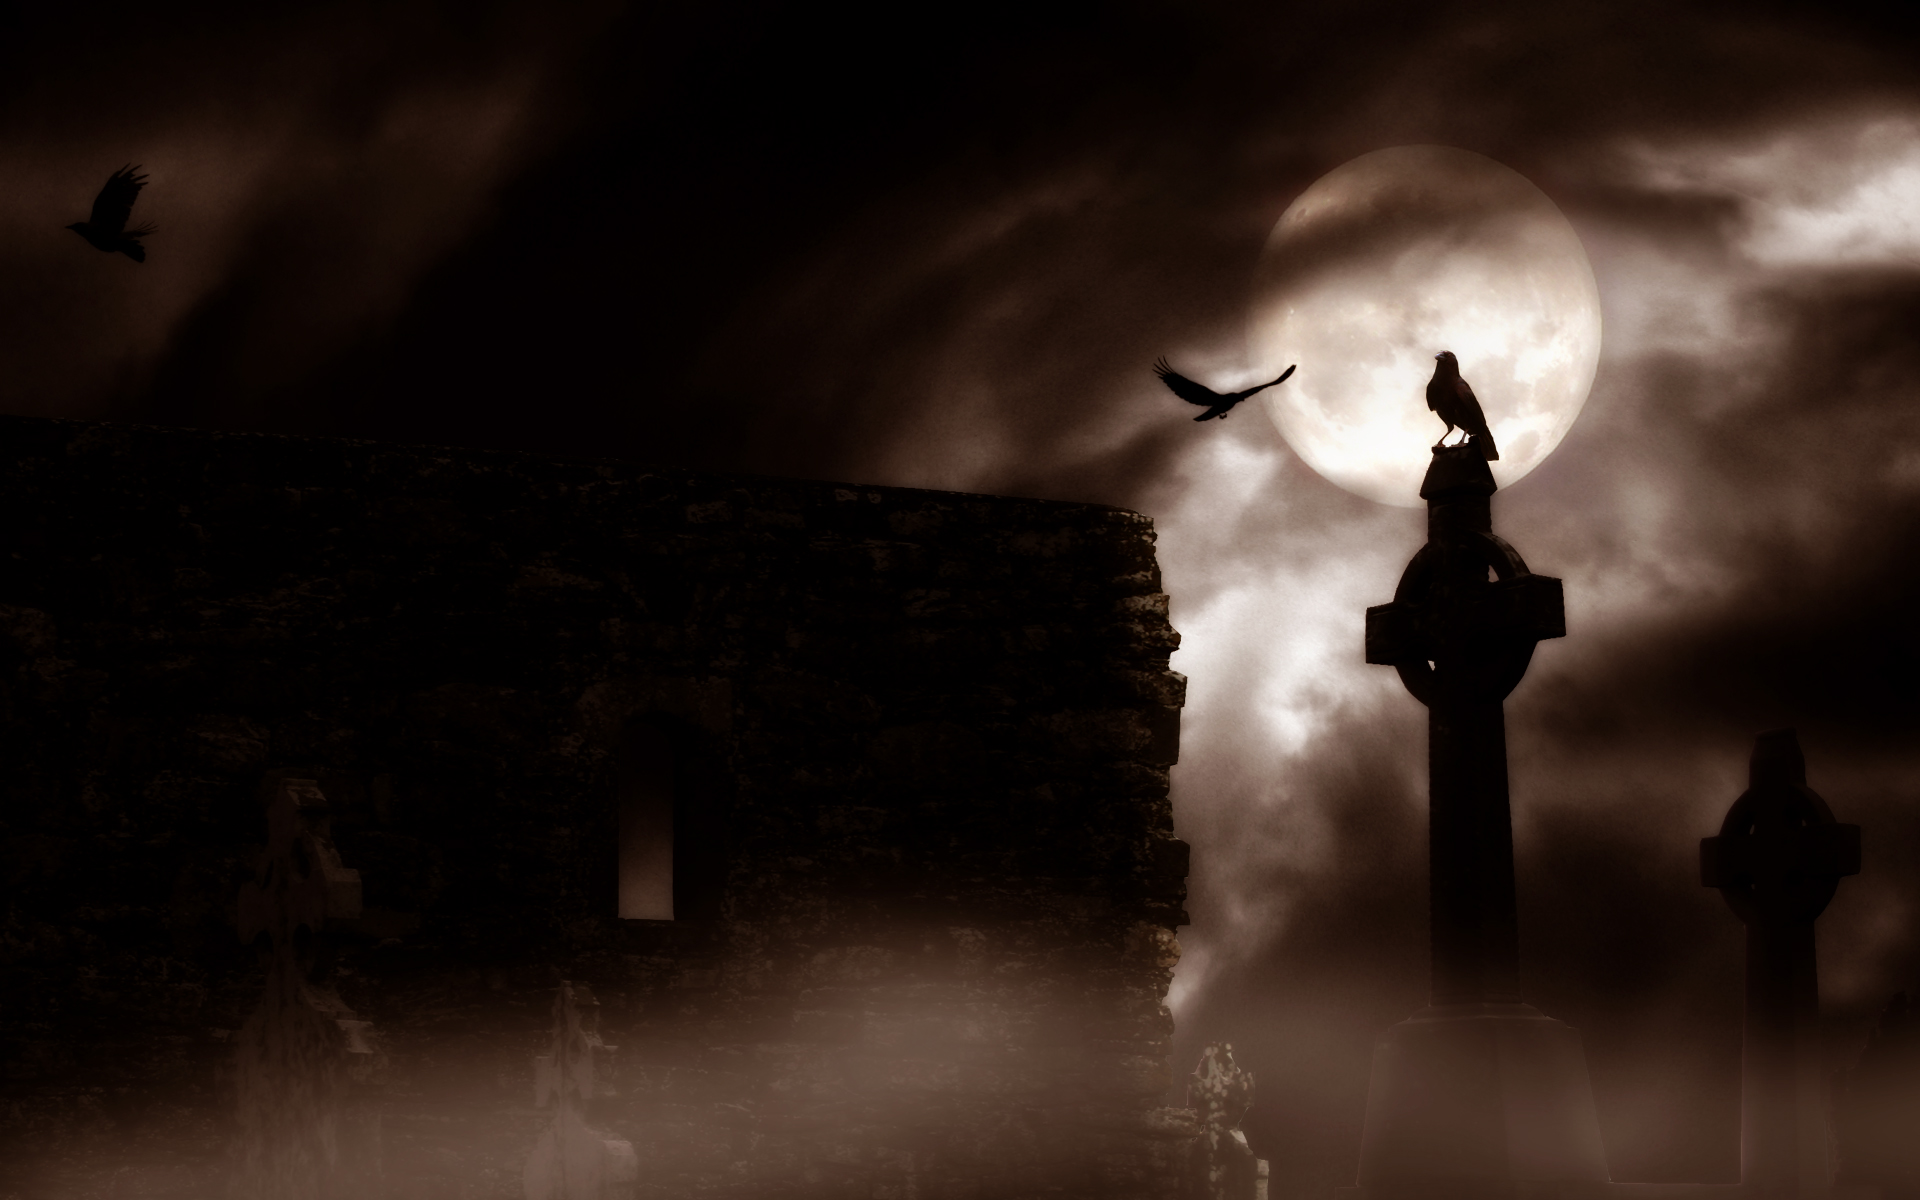 horror gothic raven cemetery graveyard halloween wallpaper background 1920x1200